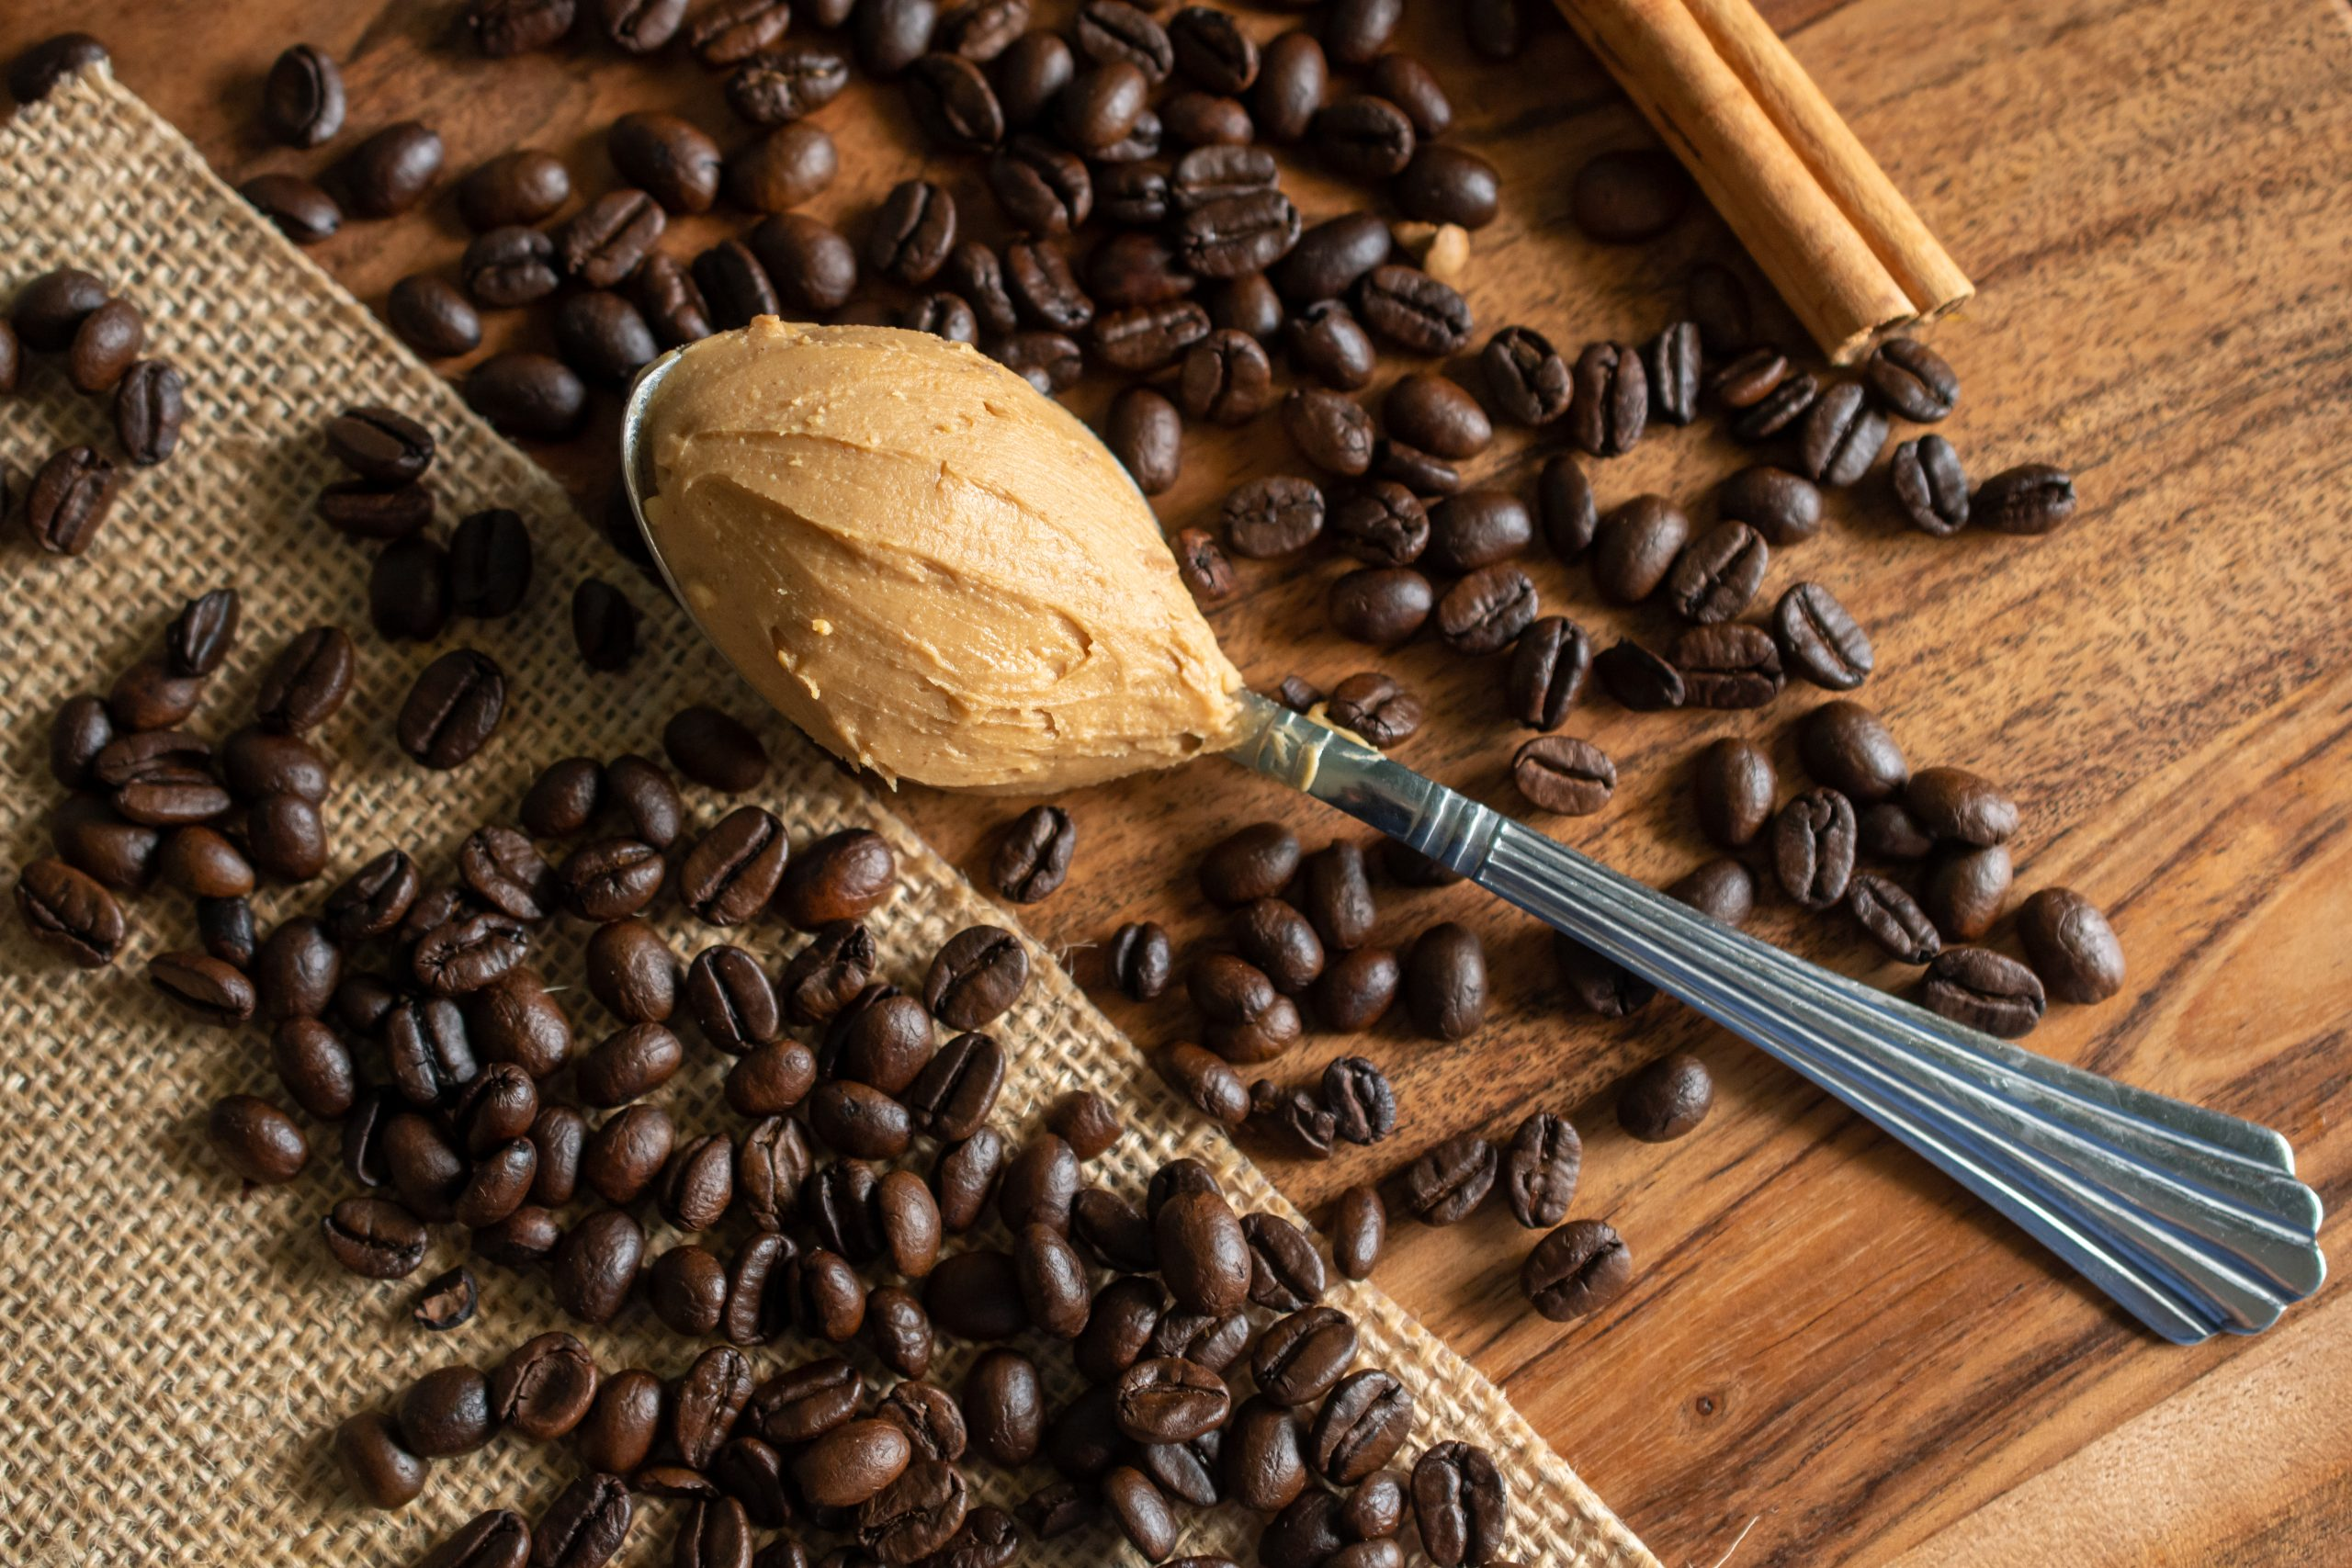 Peanut butter with coffee beans